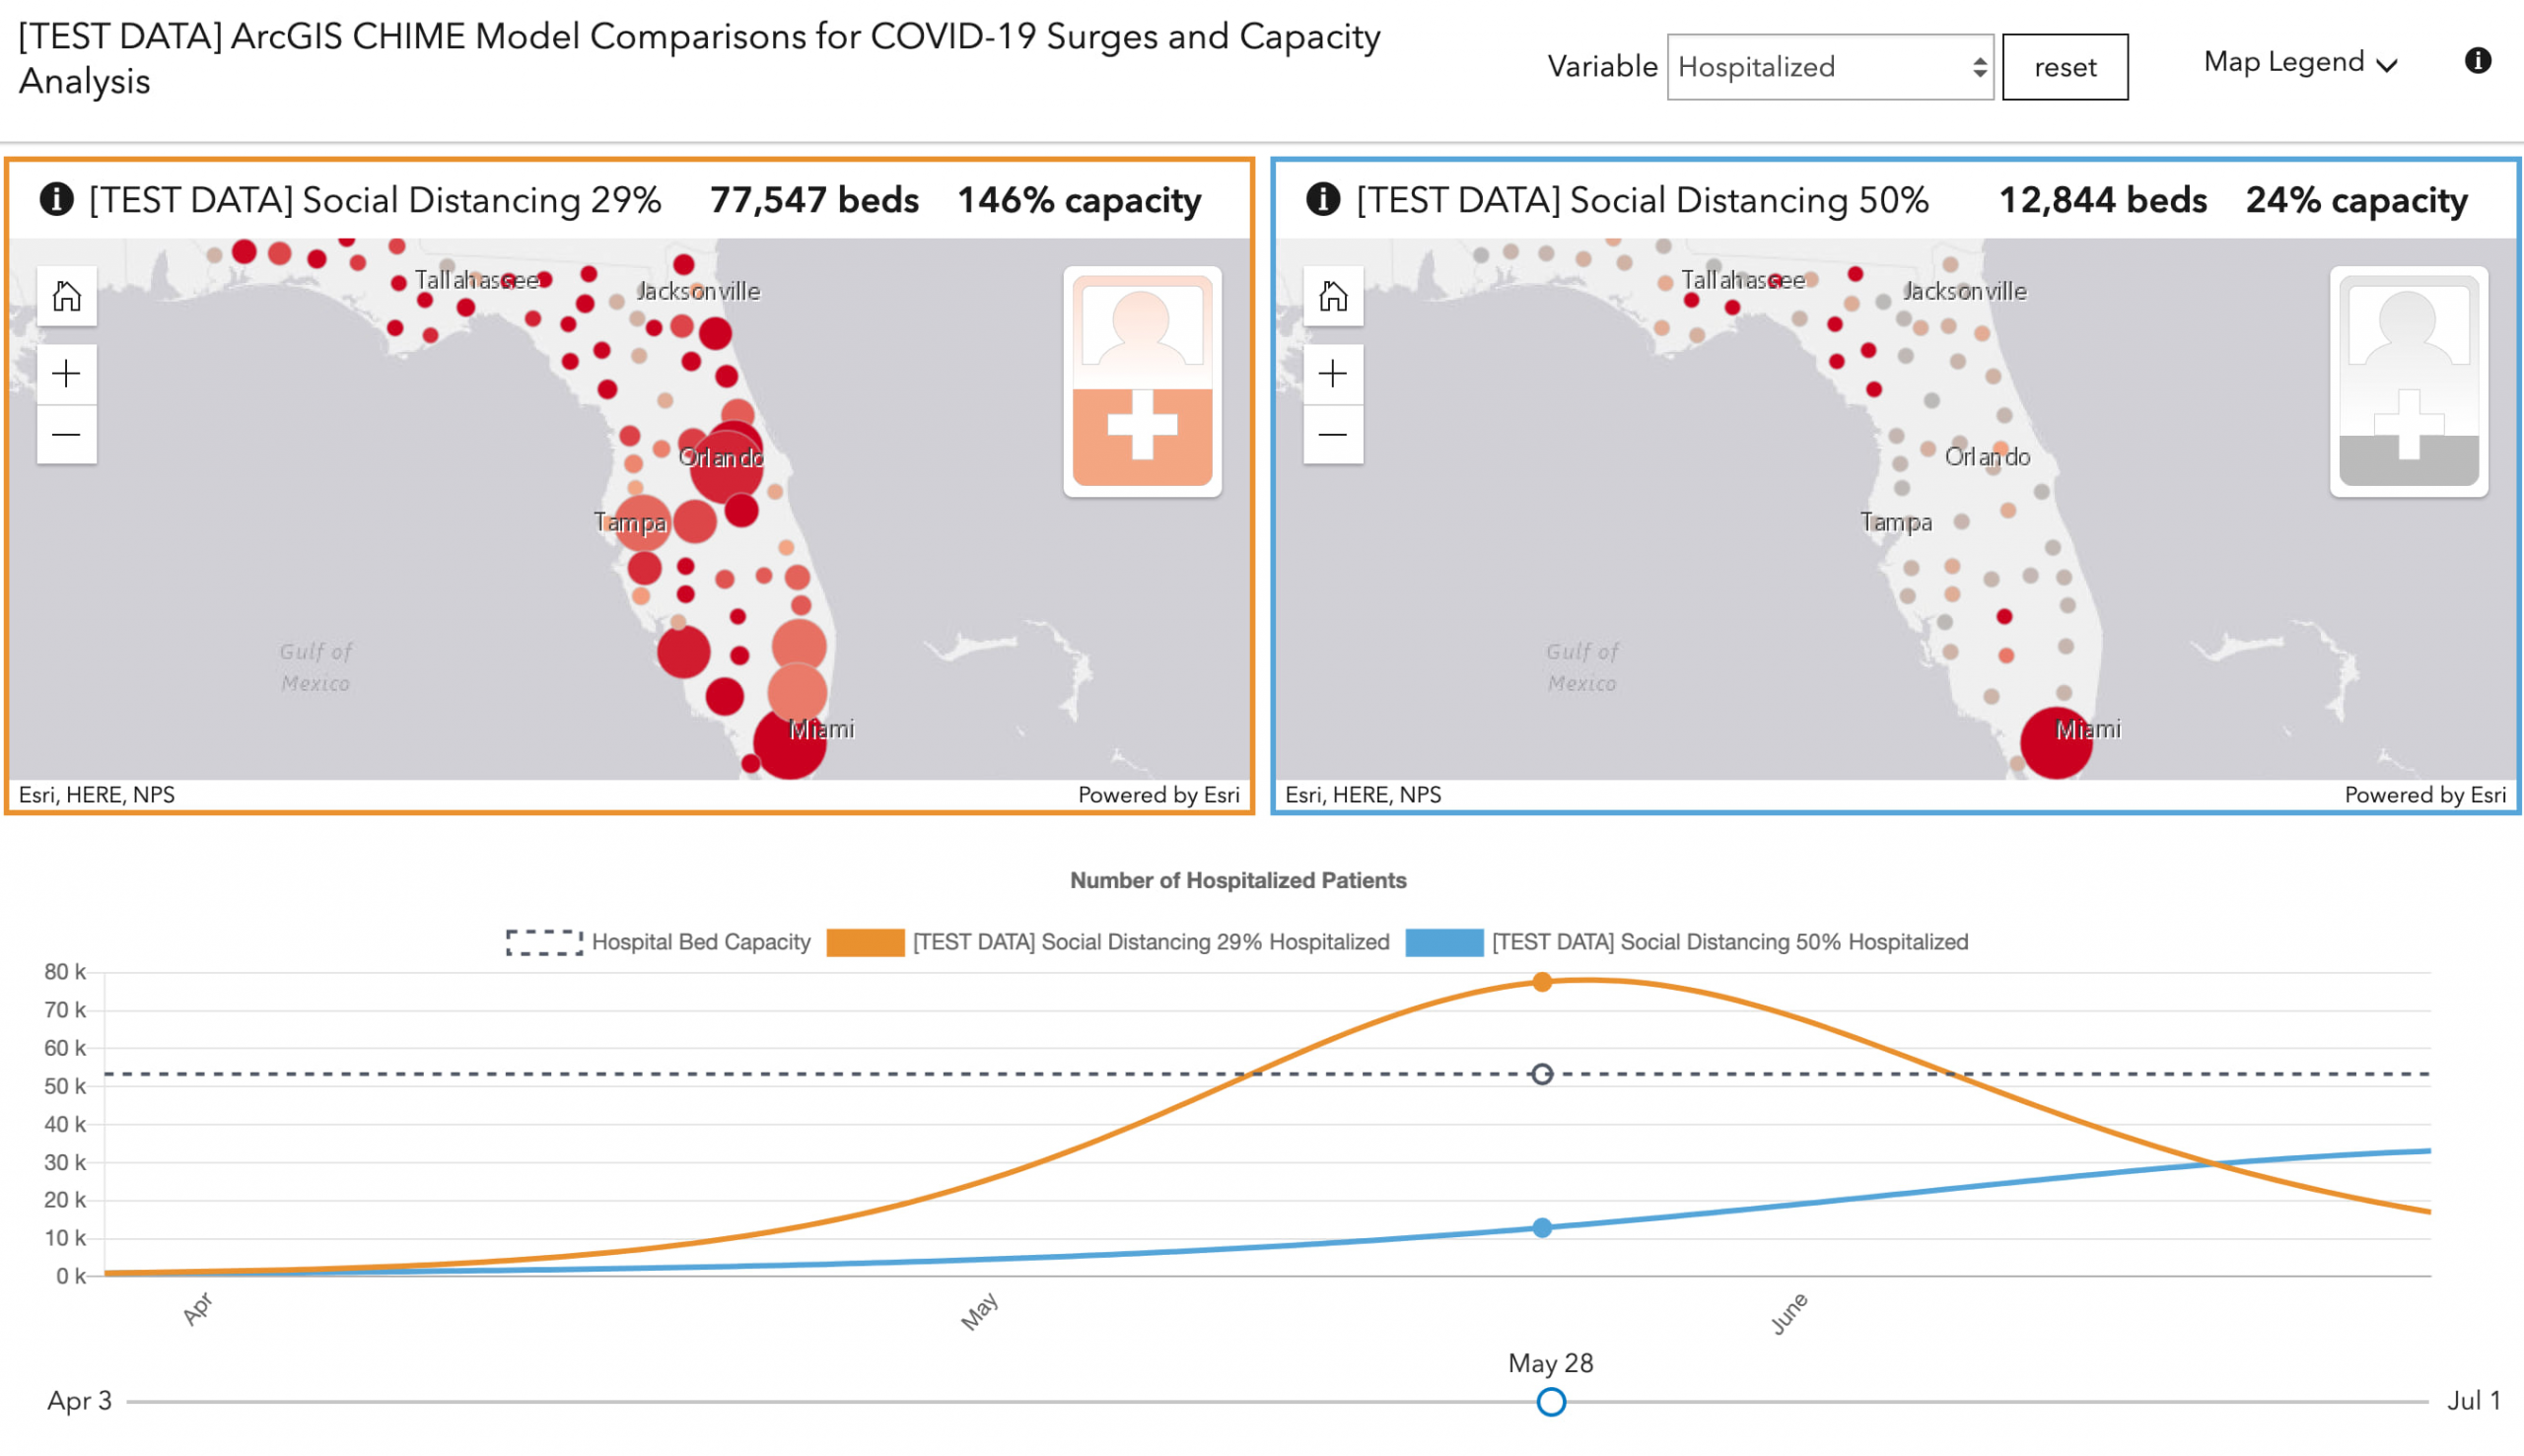 The Capacity Analysis app allows you to compare the results of two outputs of the CHIME model to observe how well social distancing policies help improve stress on hospitals during the COVID-19 pandemic.